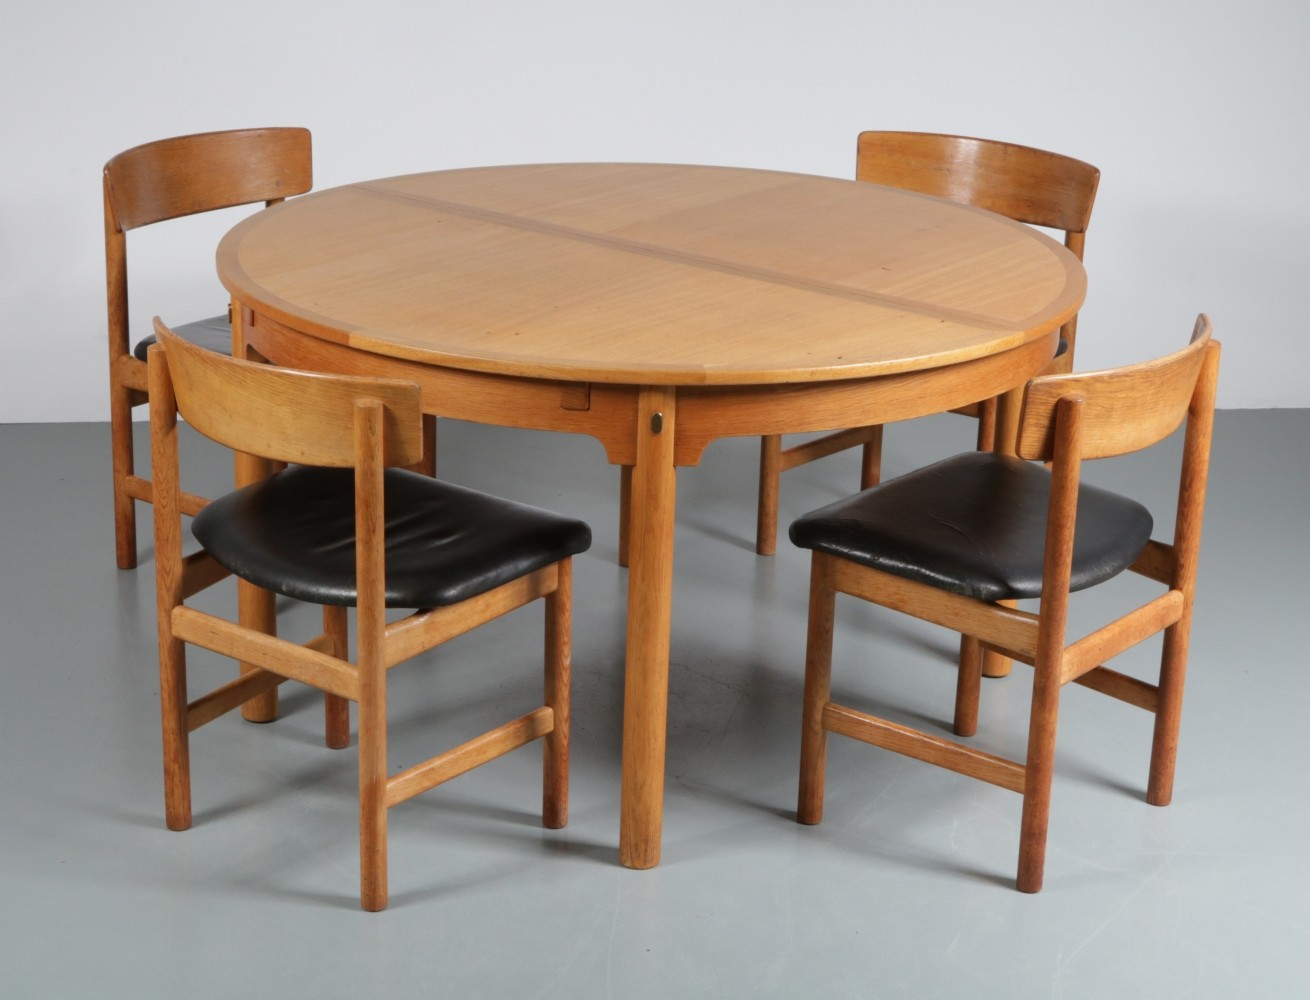 Dinner set by Børge Mogensen for Karl Andersson & Söner, 1950s